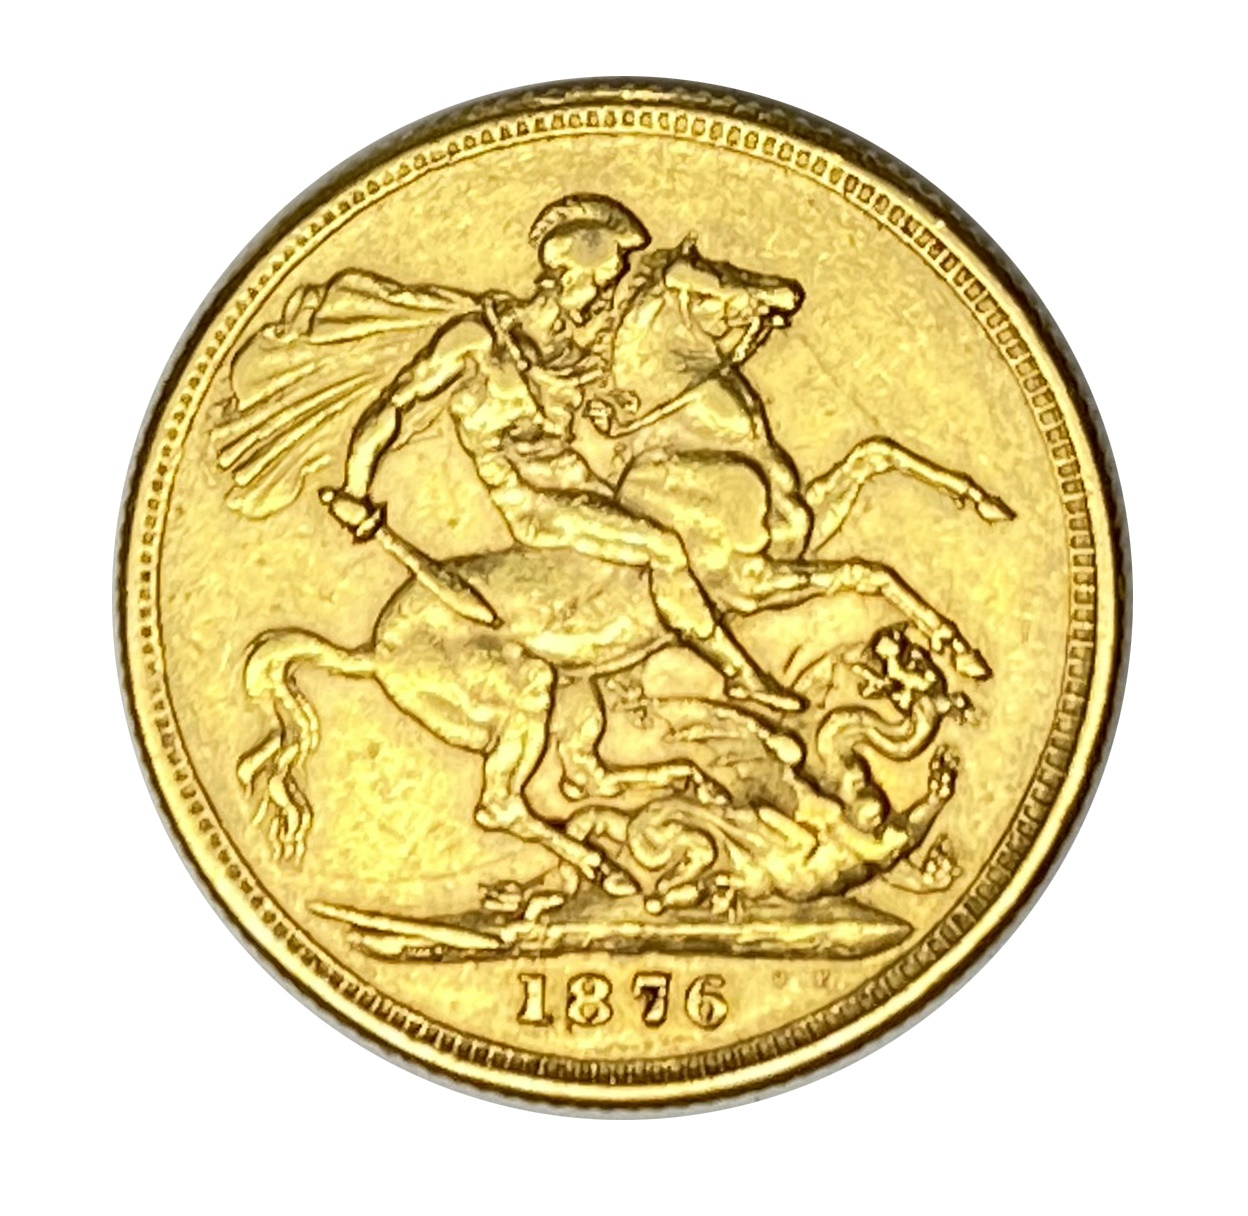 Queen Victoria gold Sovereign coin, 1876 - Image 2 of 2